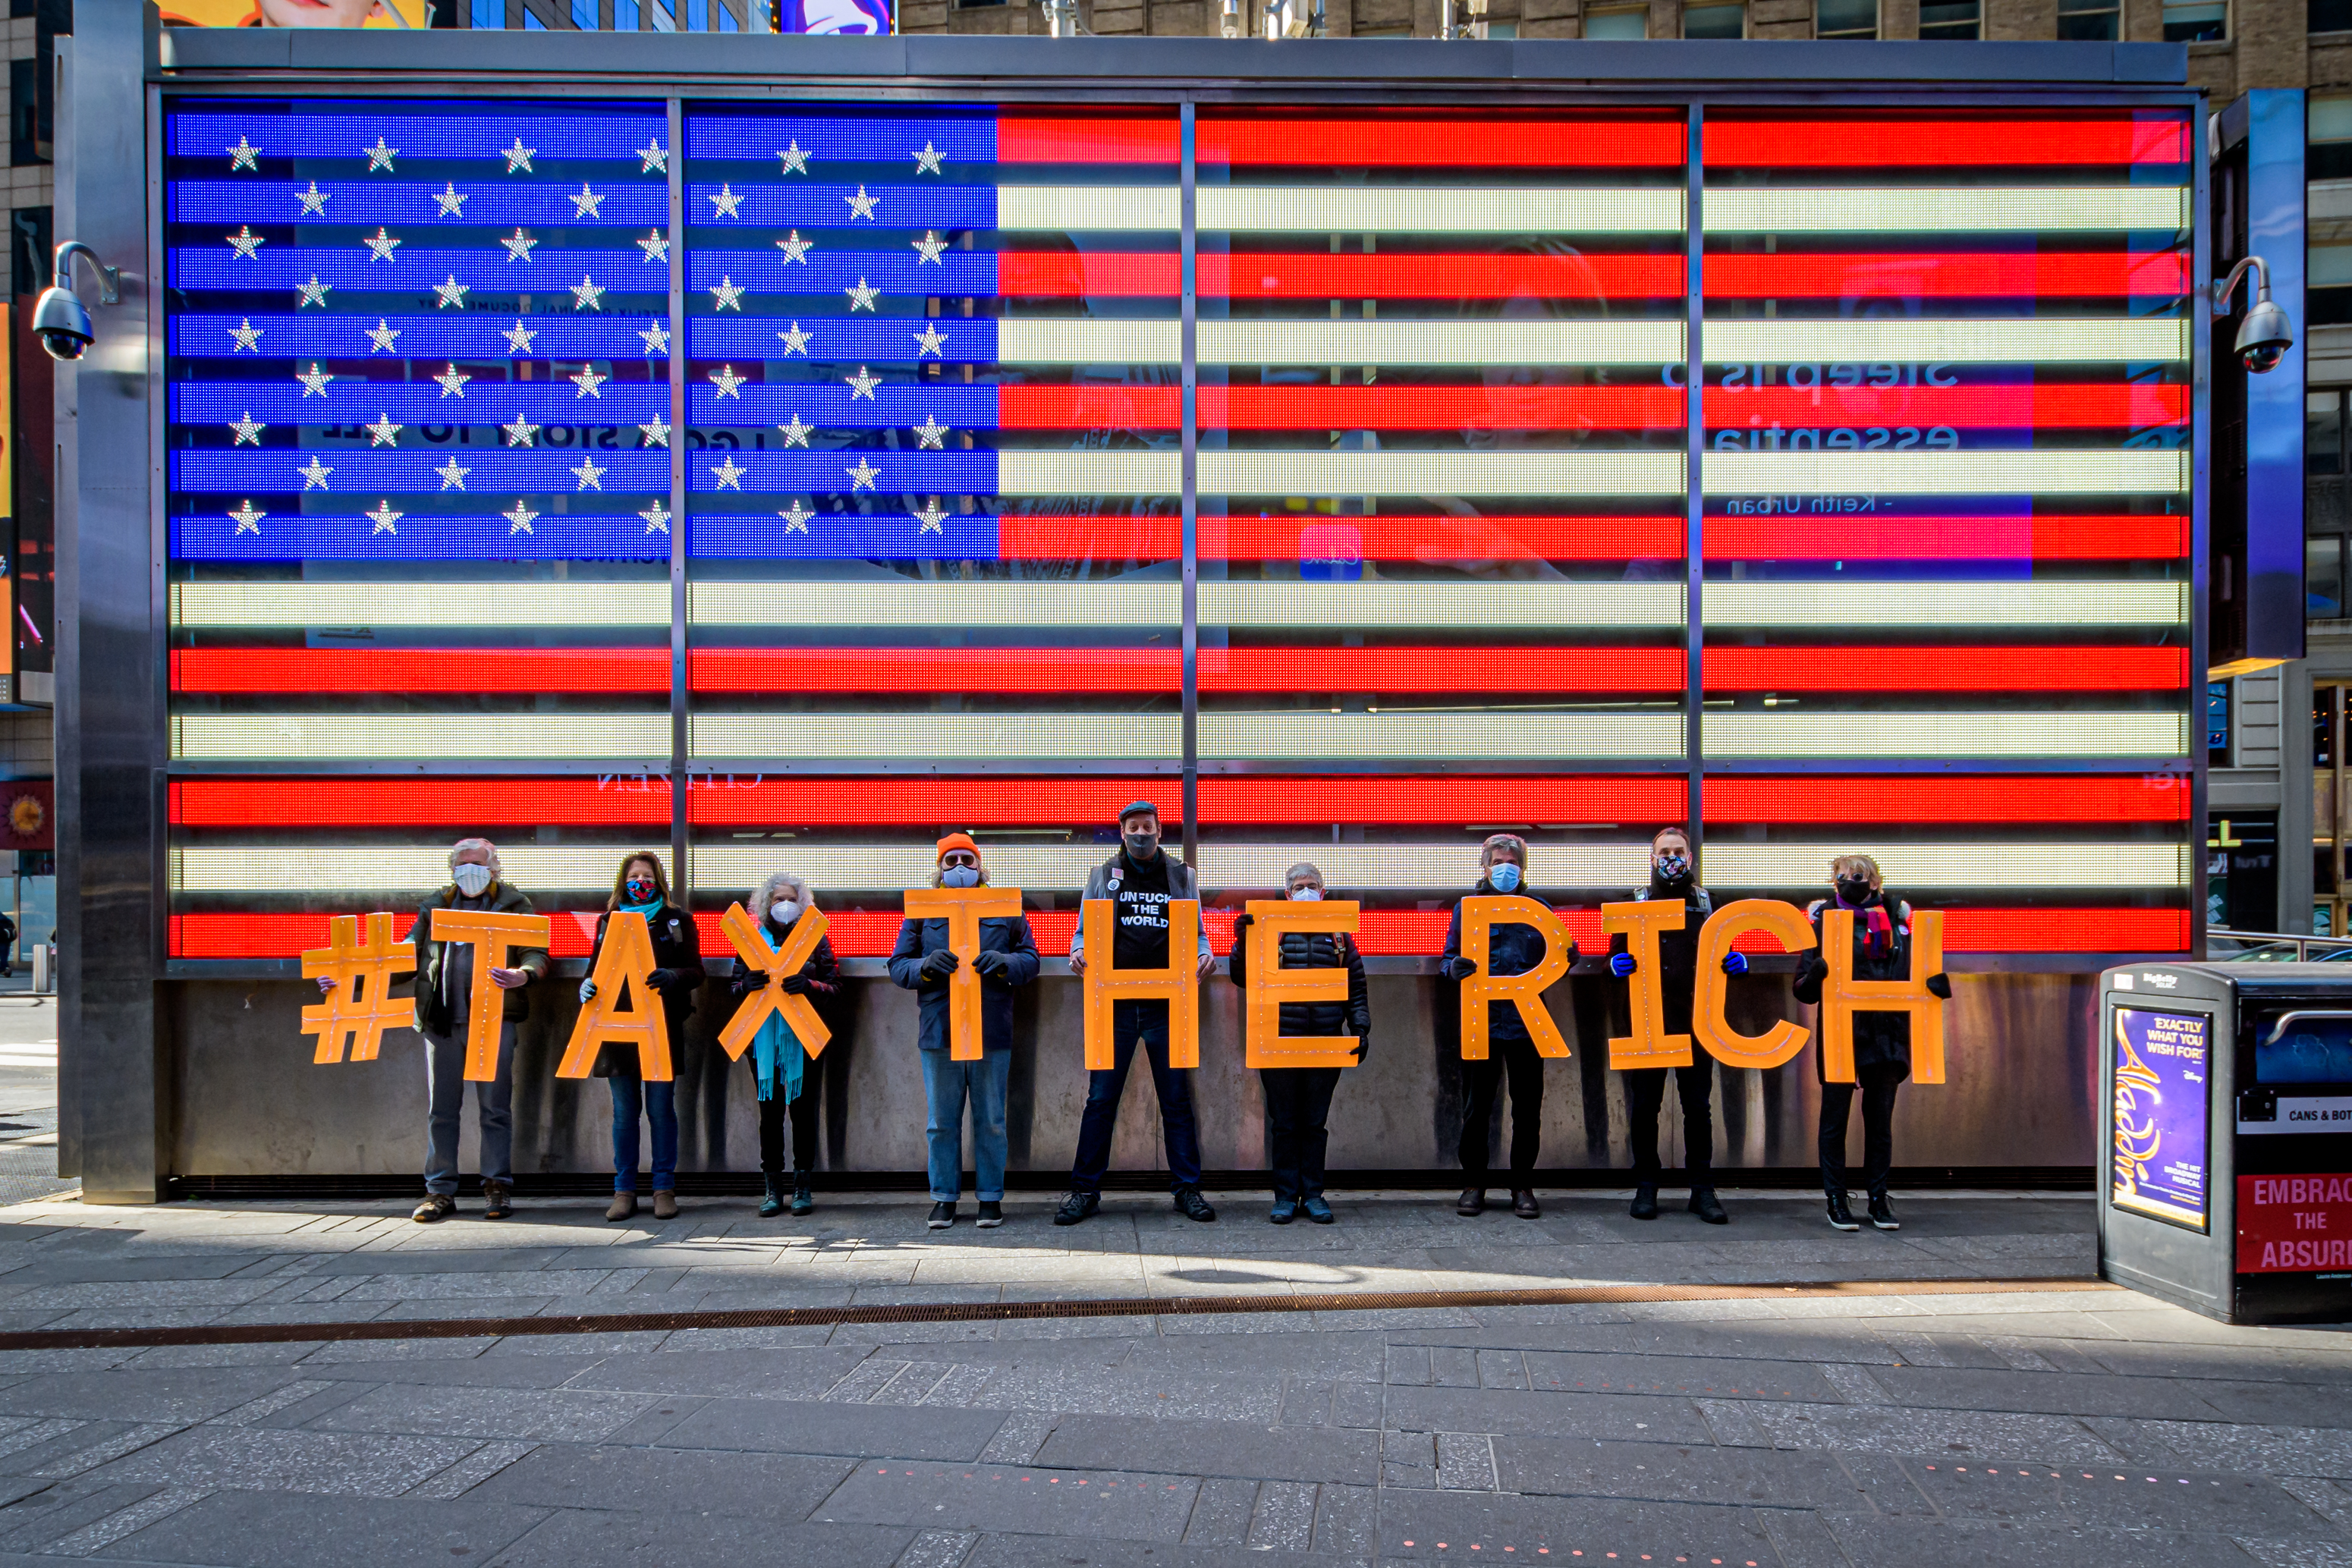 Participants seen spelling out #TaxTheRich at Times Square in front of an American flag.